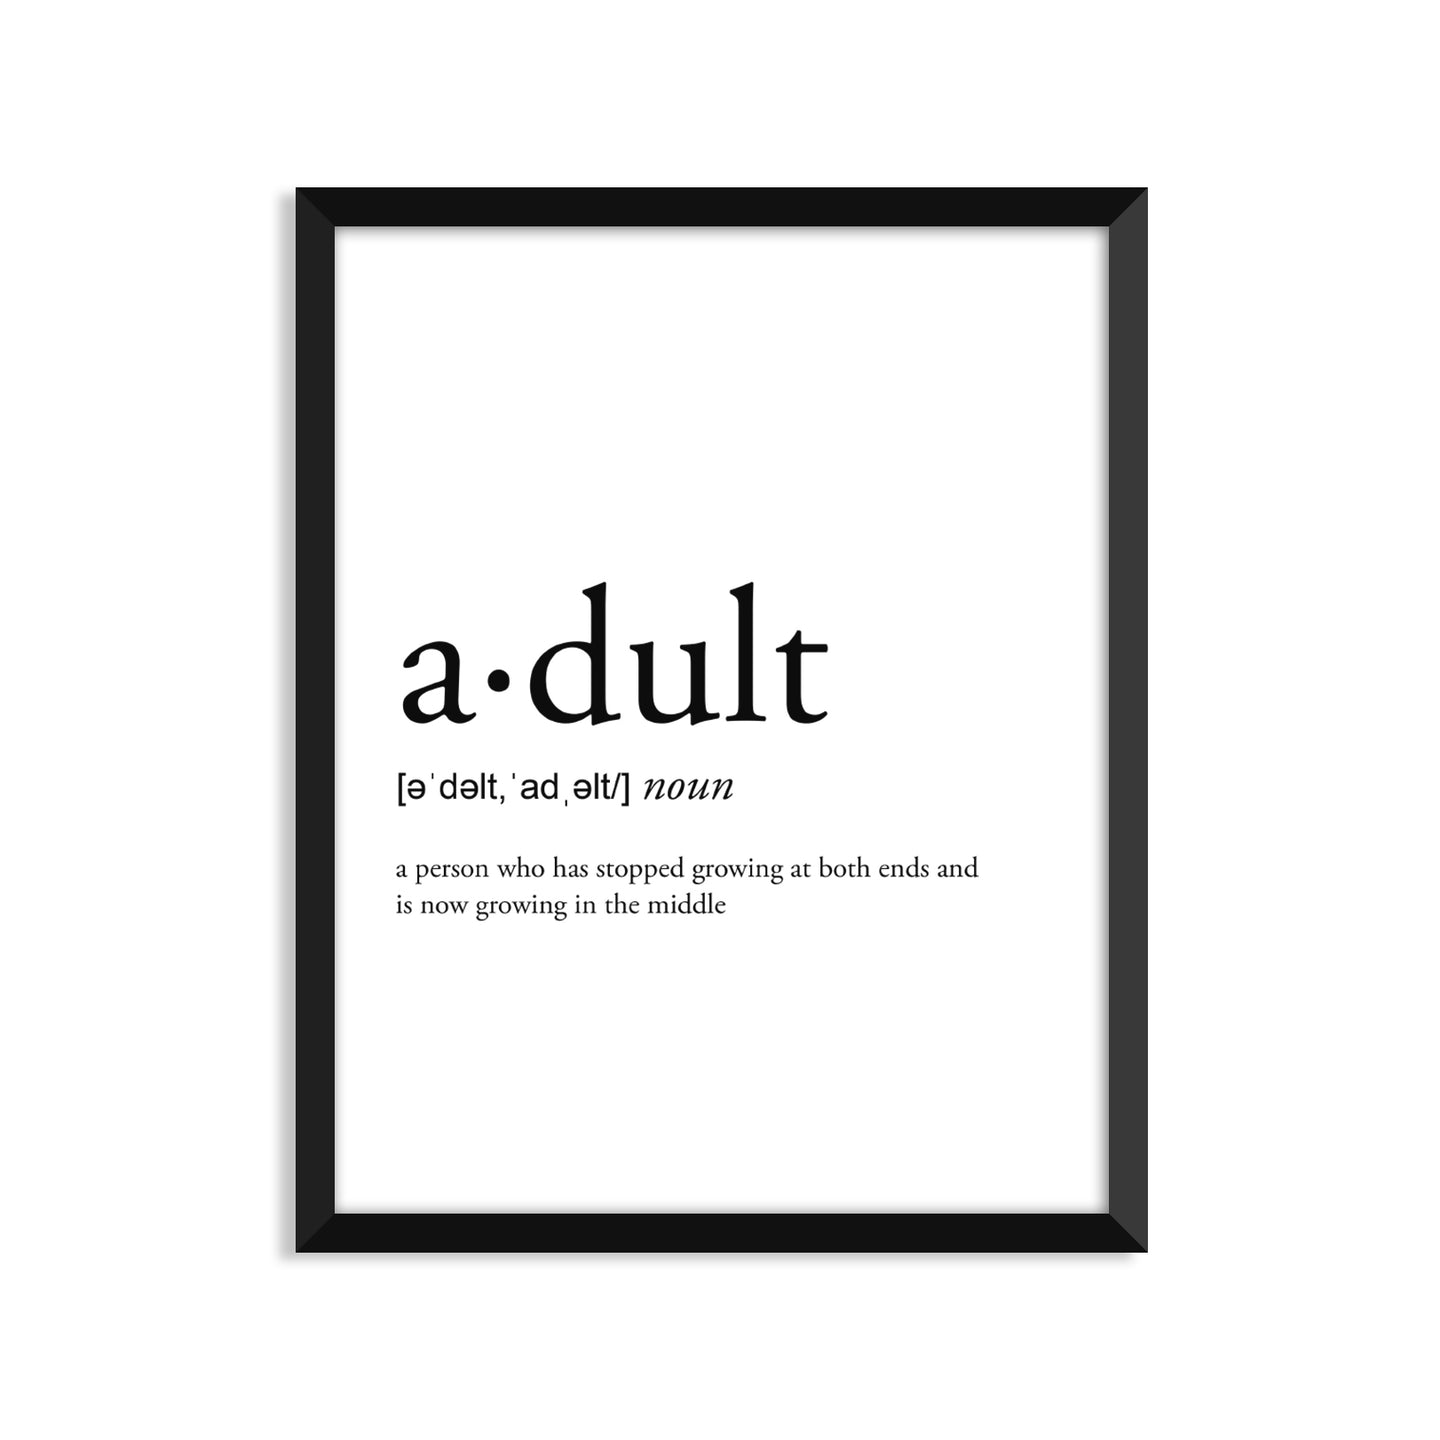 Adult definition art print or greeting card